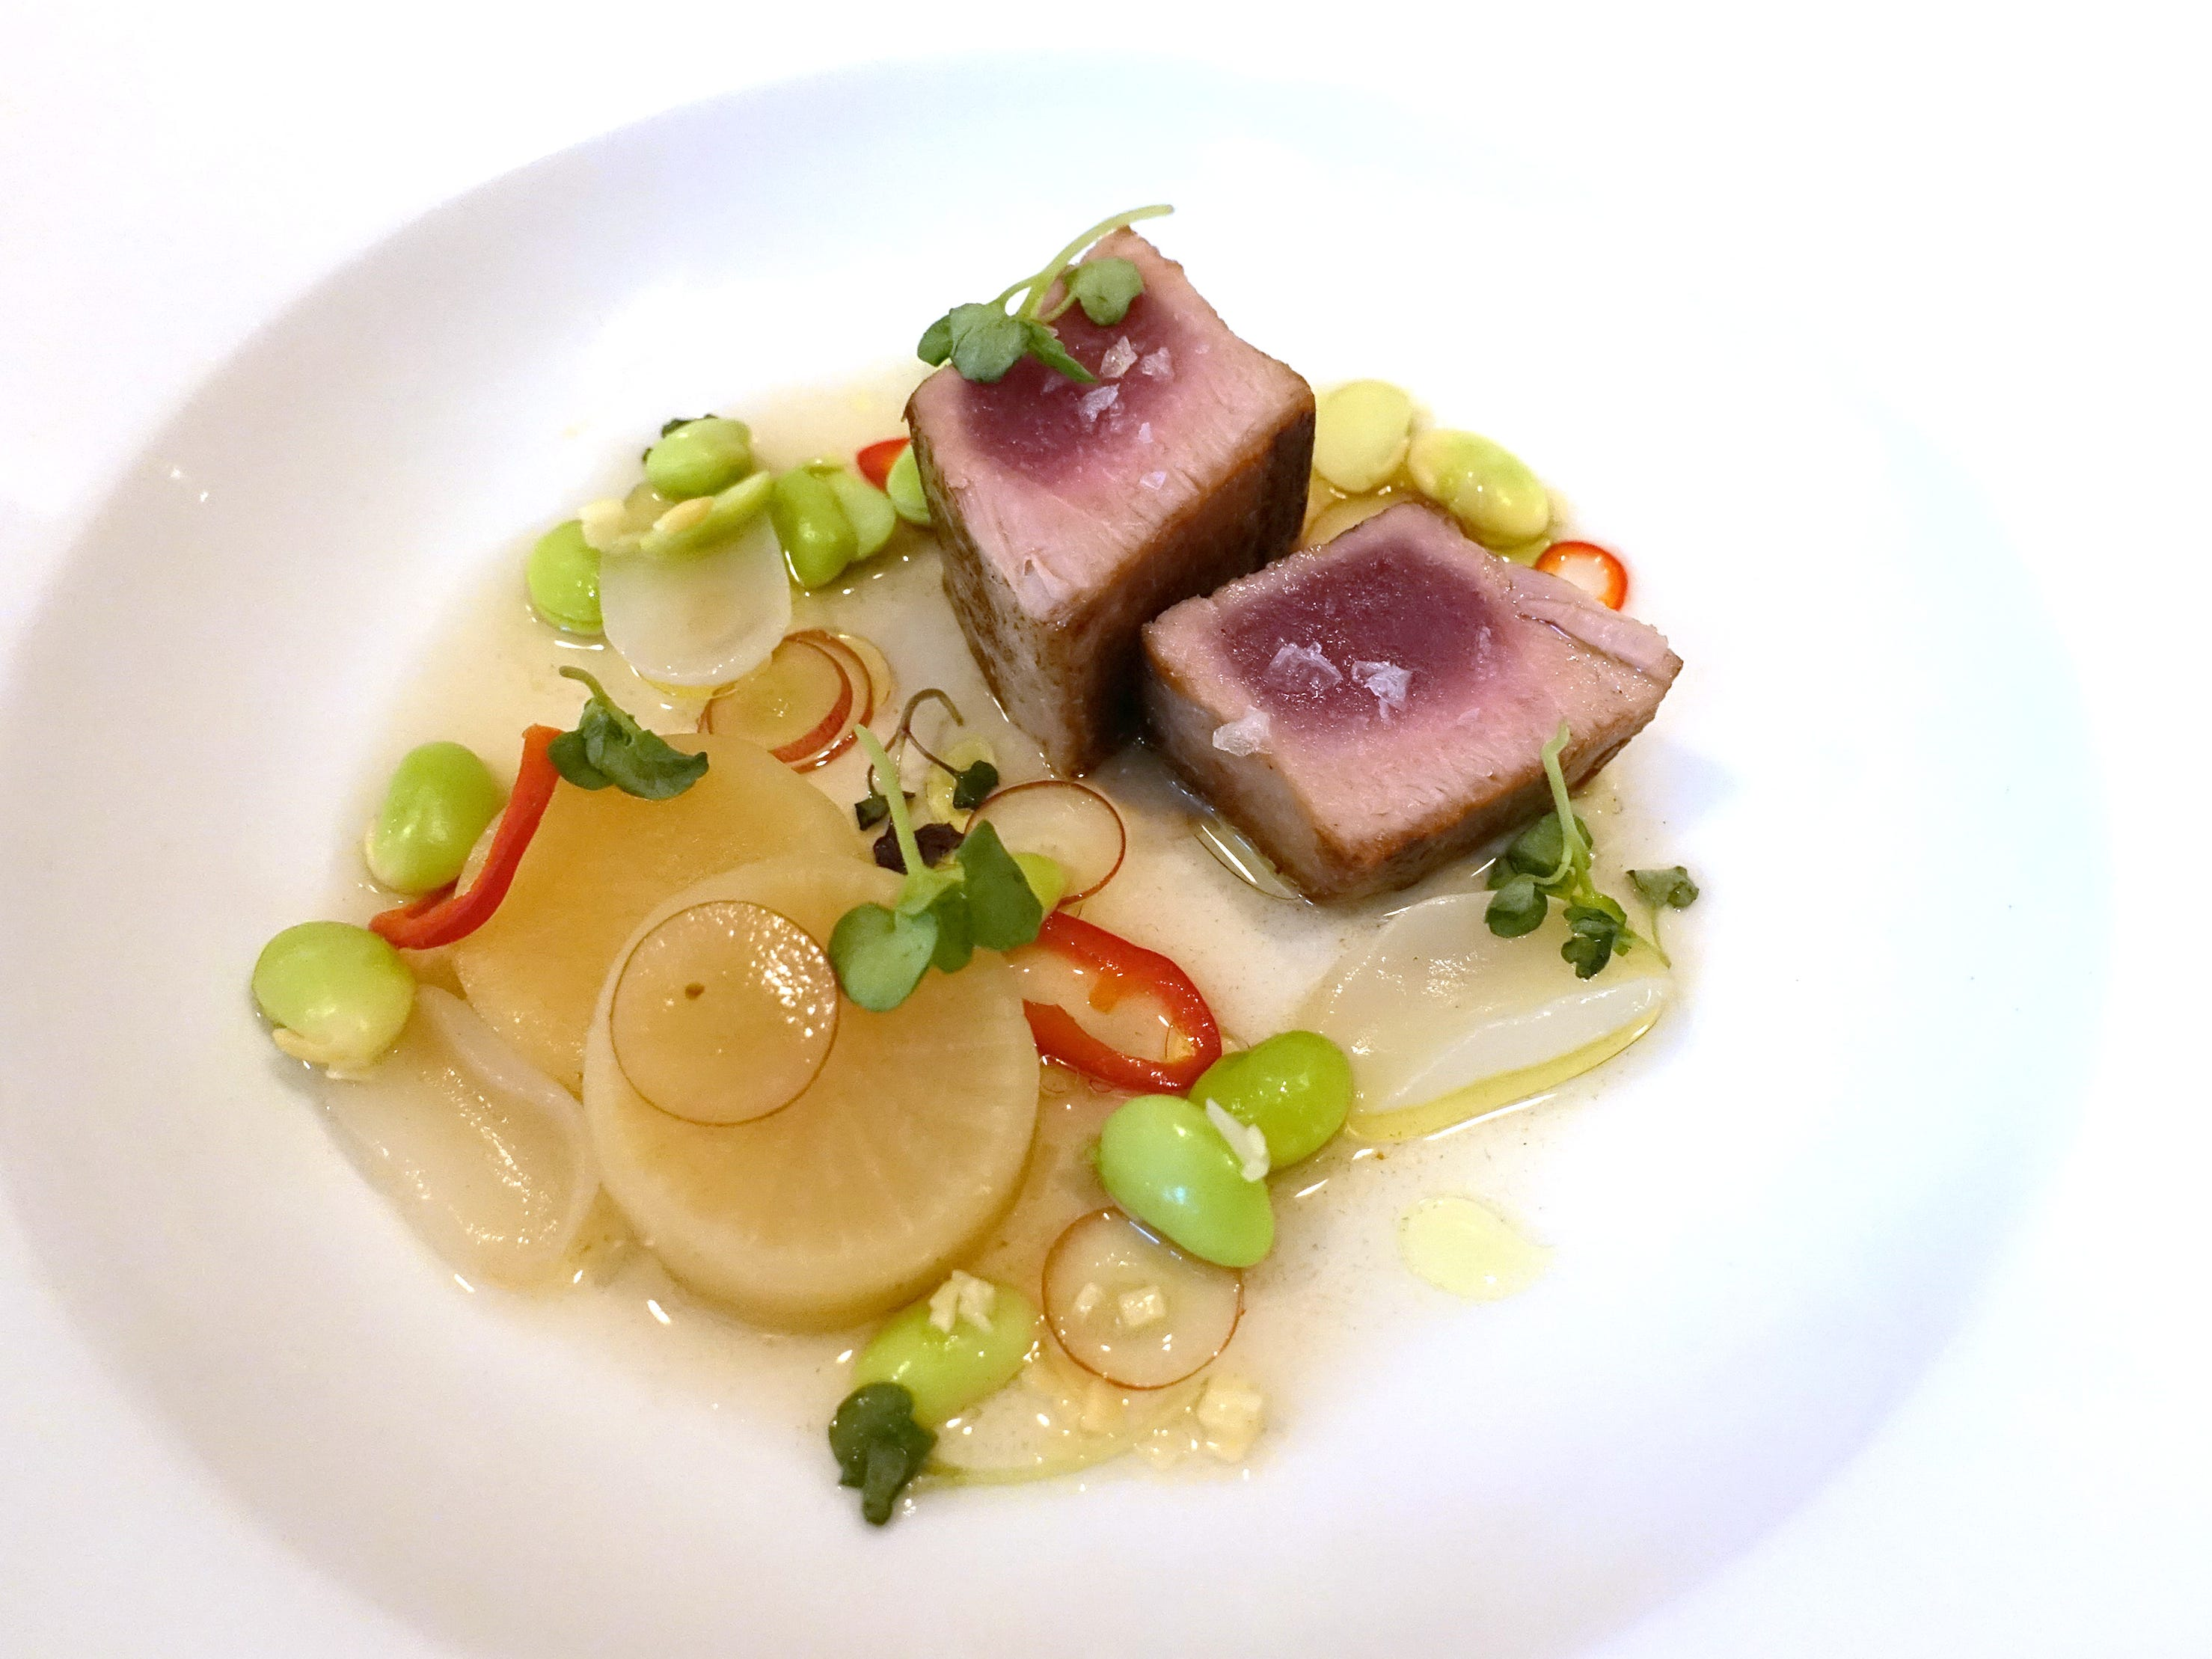 Seared tuna with rambutan, daikon, ginger, shiso, grapes and Fresno chiles at Confluence in Carefree, AZ.